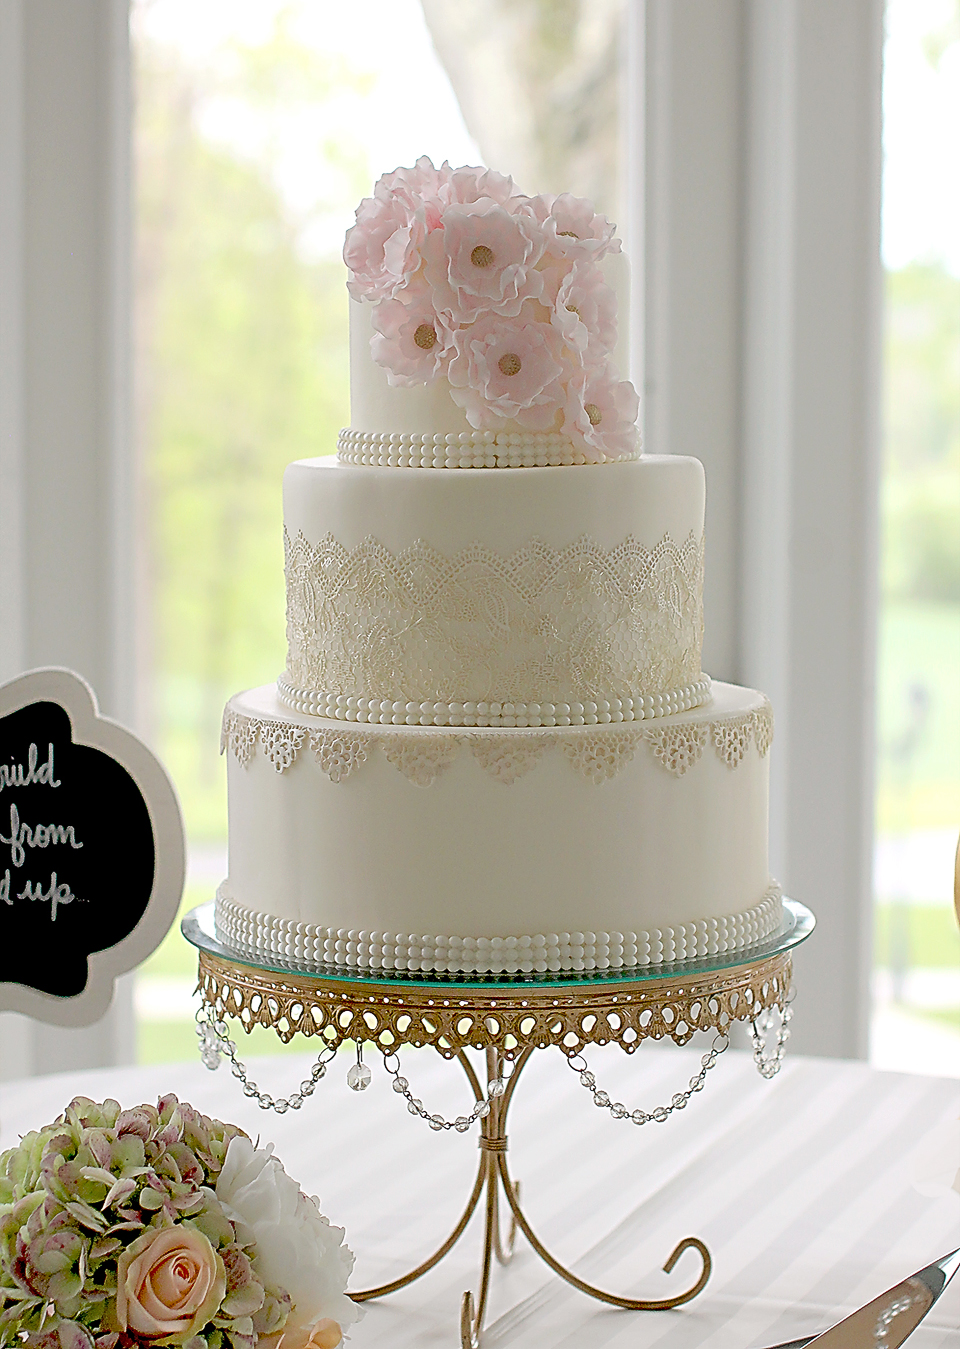 Couture Cakery - Wedding Cake